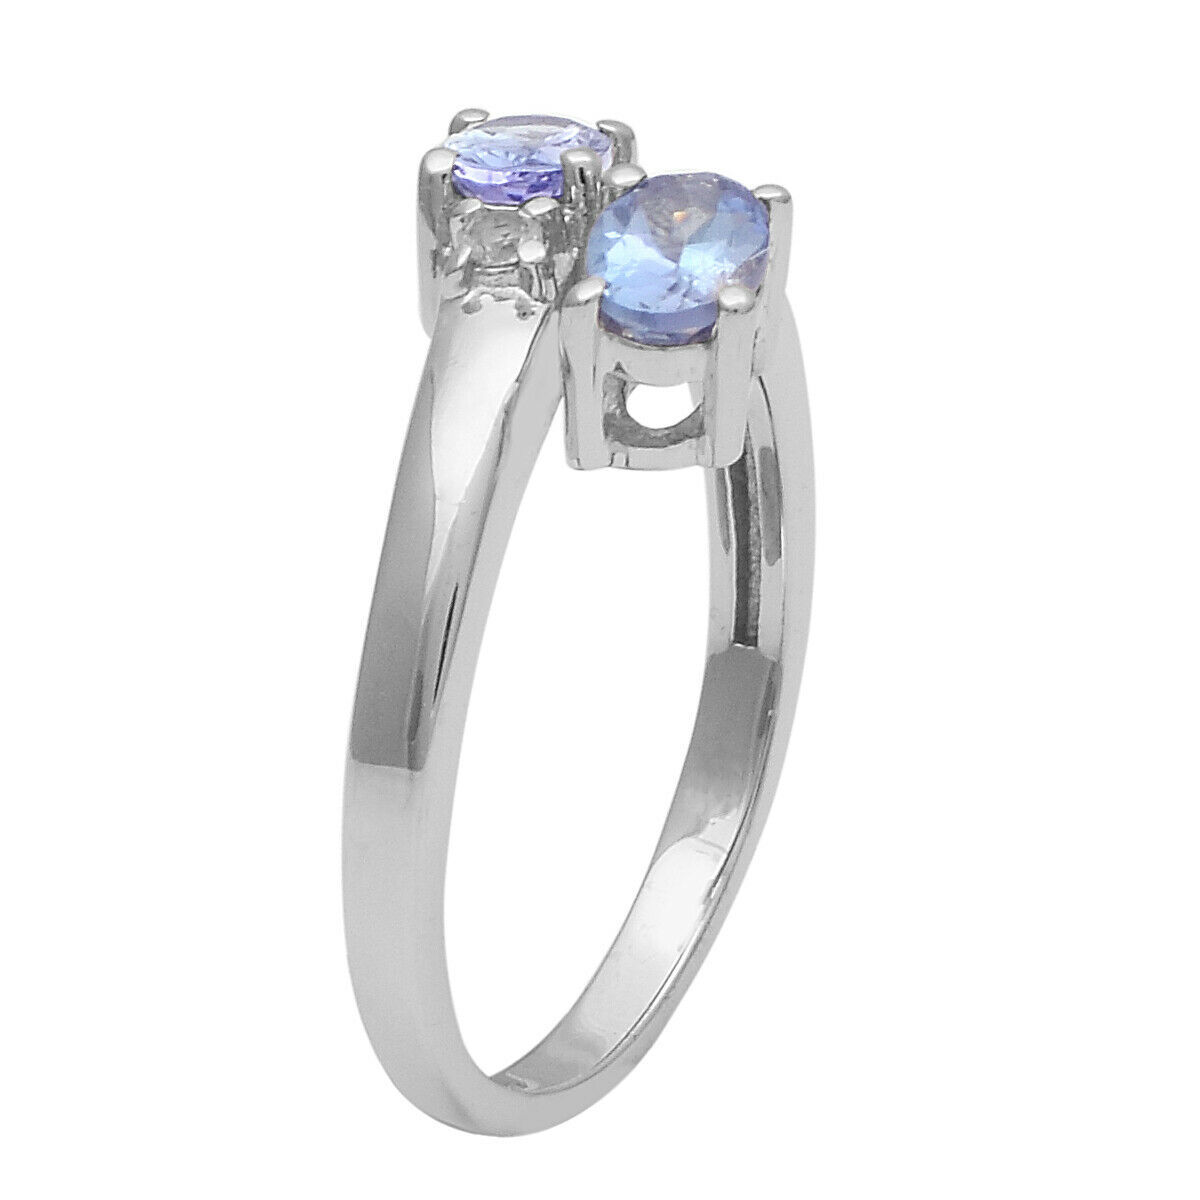 Primary image for Solid 925 Sterling Silver 0.96 Ct Tanzanite Dual Gemstone Stackable Wedding Ring